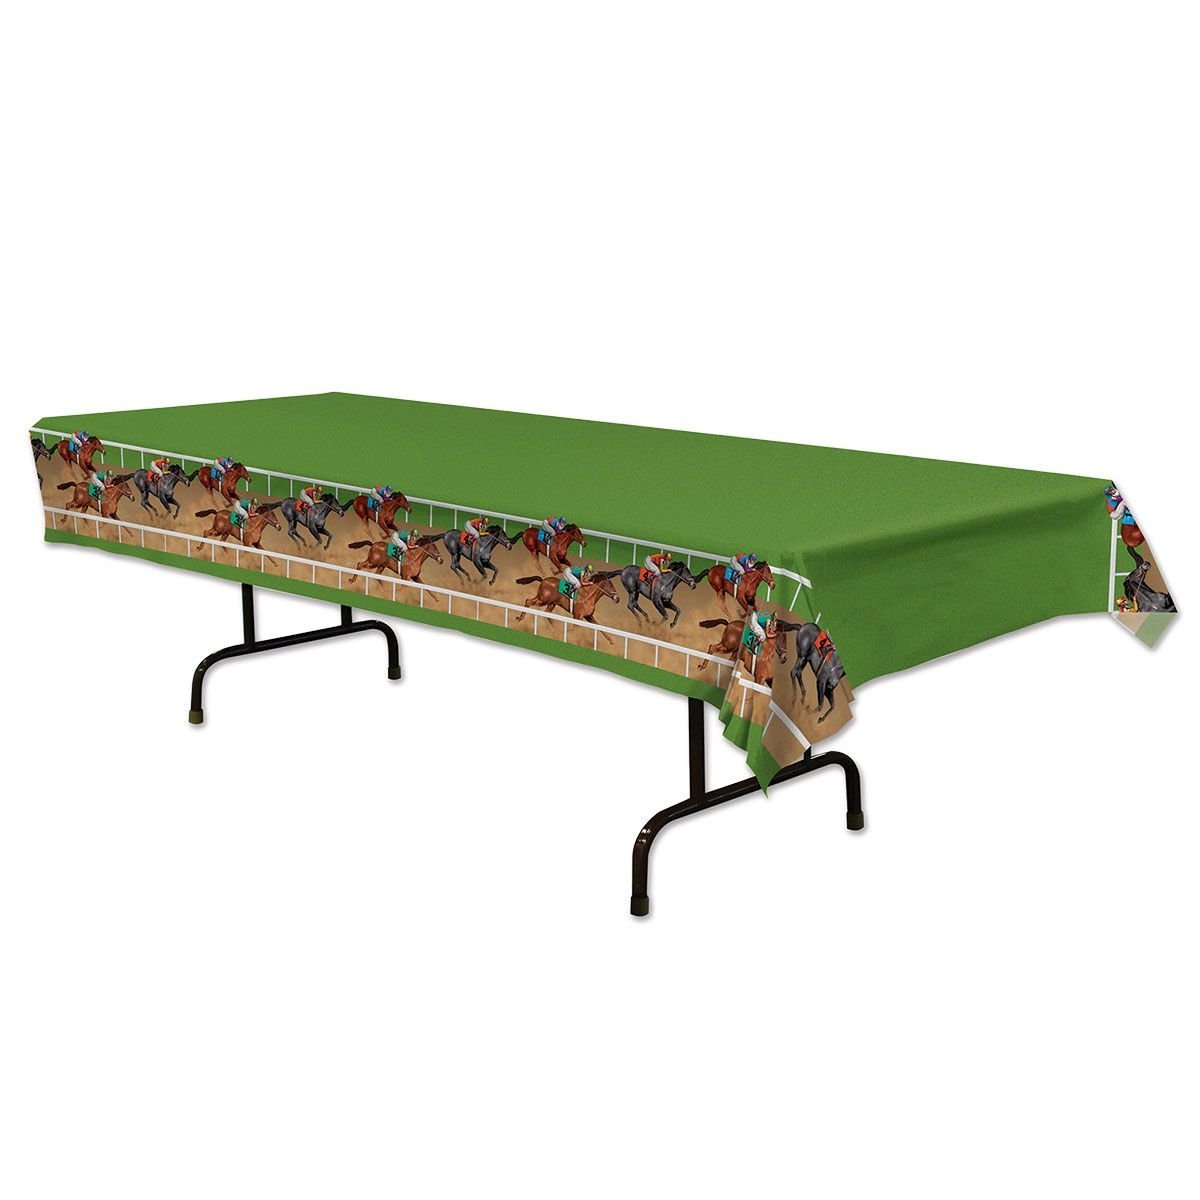 Horse Racing Table Cover